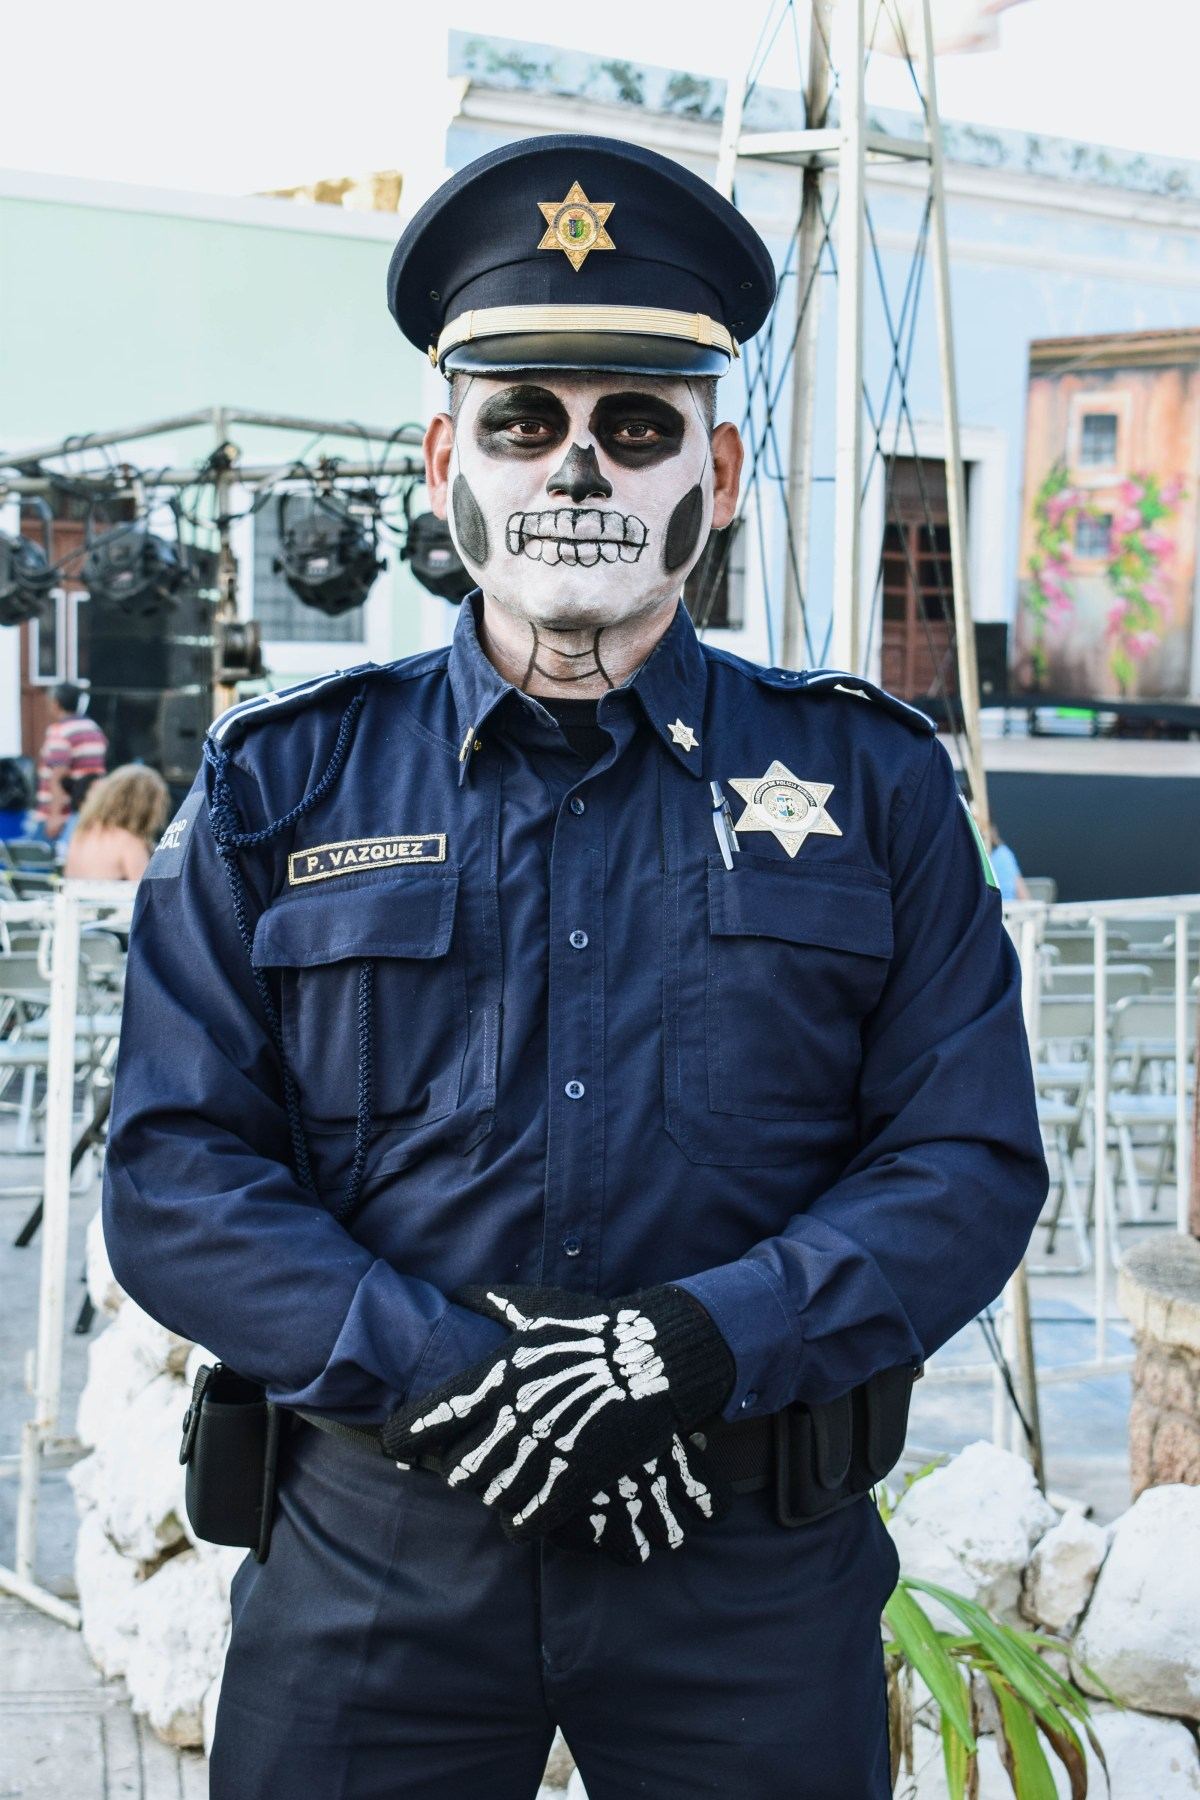 The Day of the Dead police costume